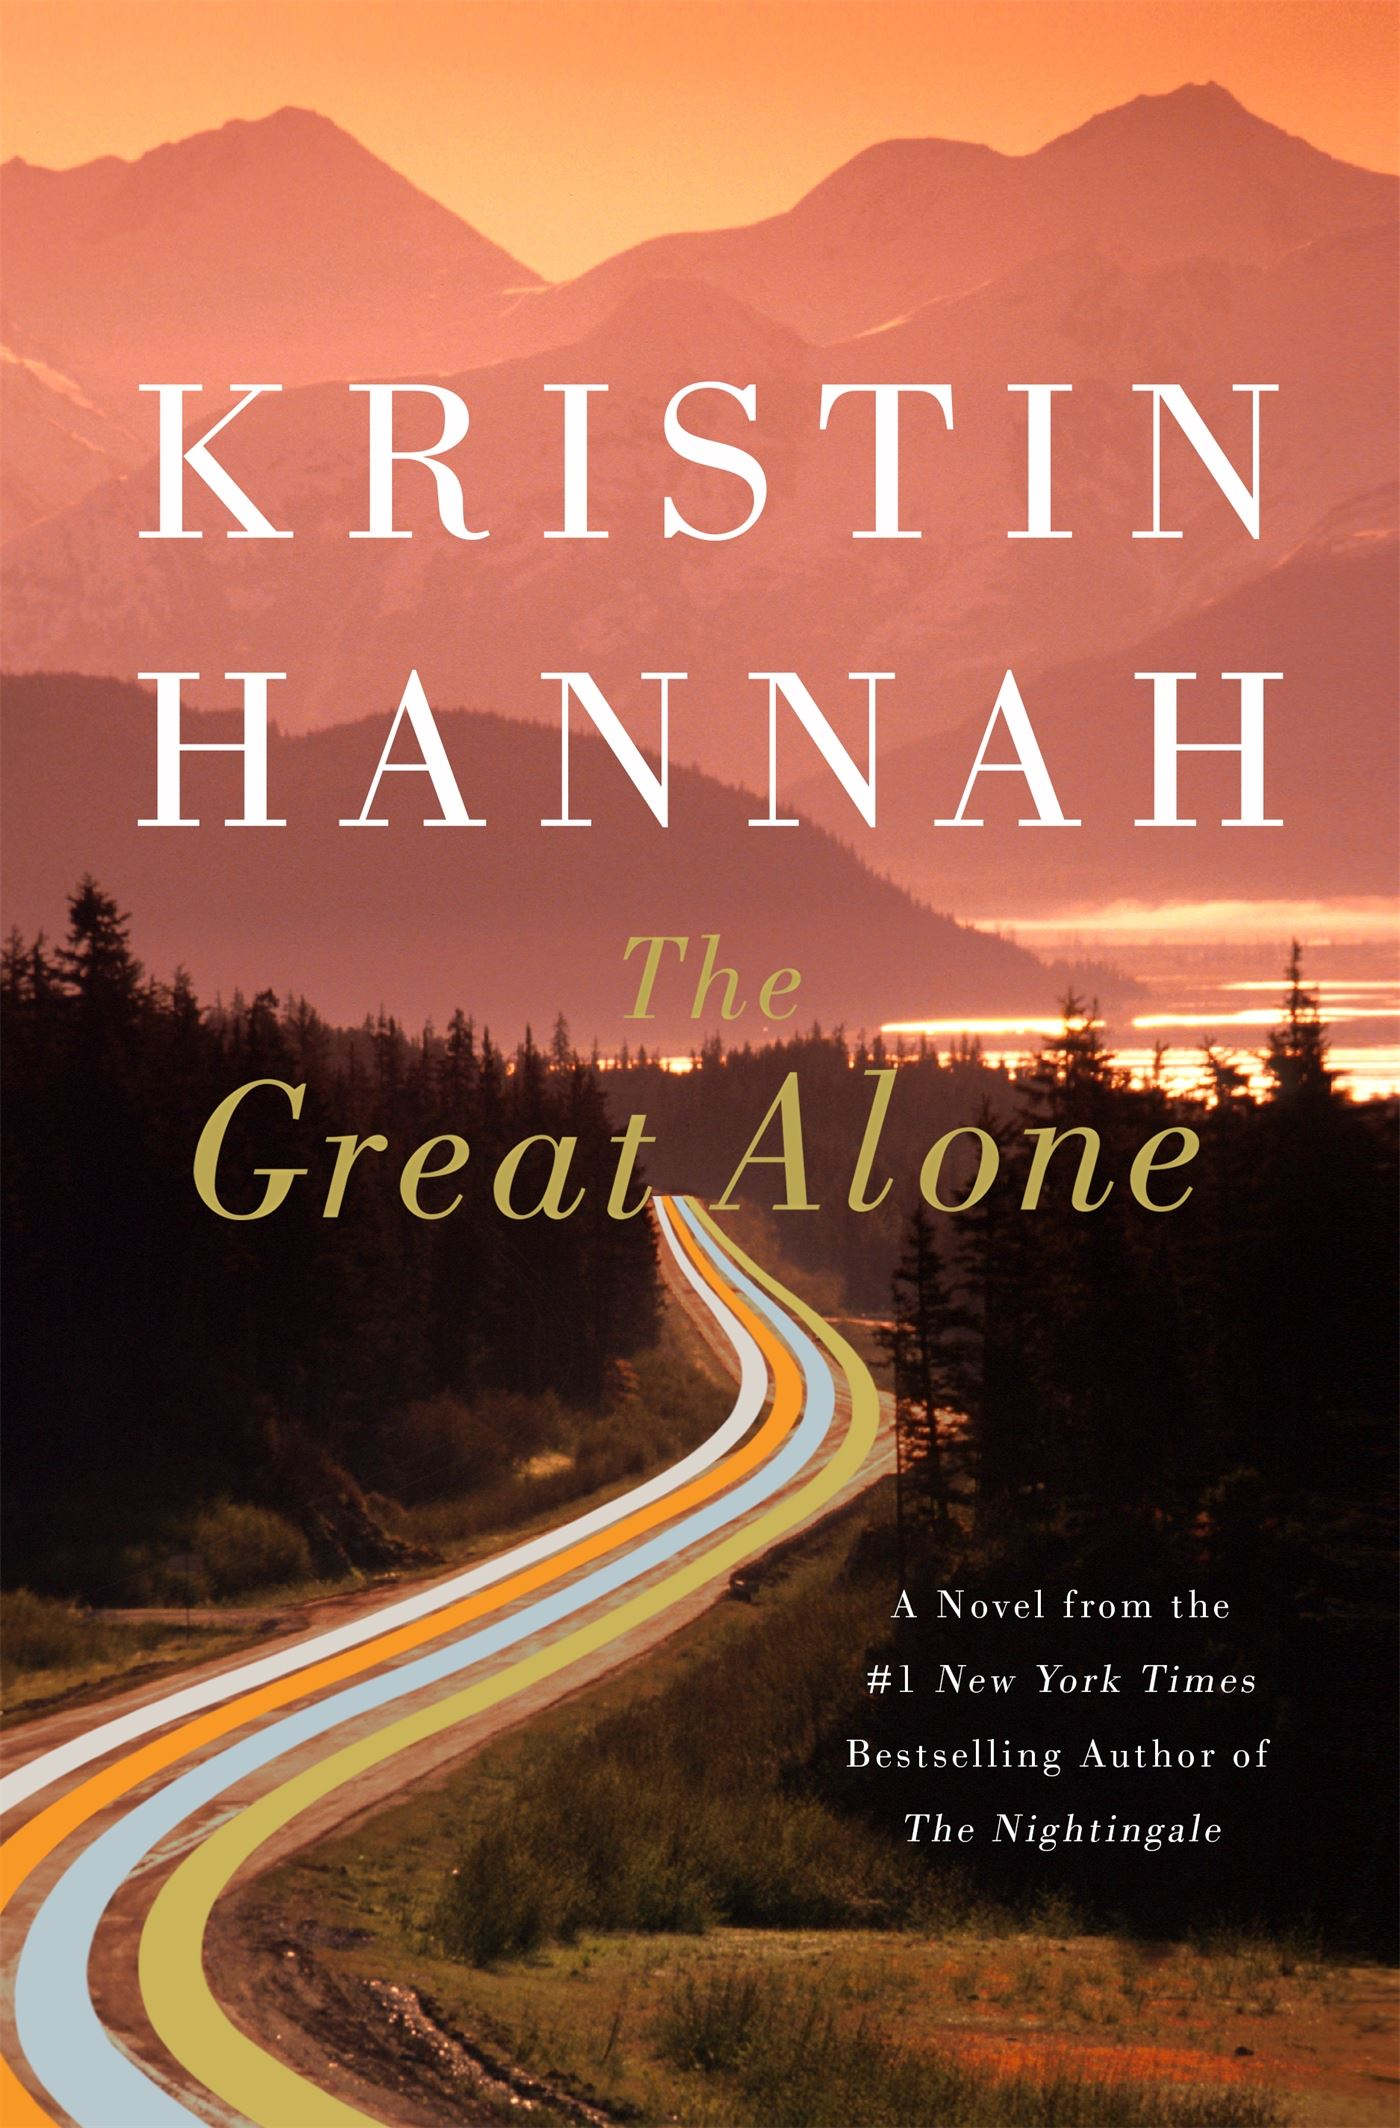 The Great Alone book cover. Pink hued costal forest landscape with mountains in the background. A ro